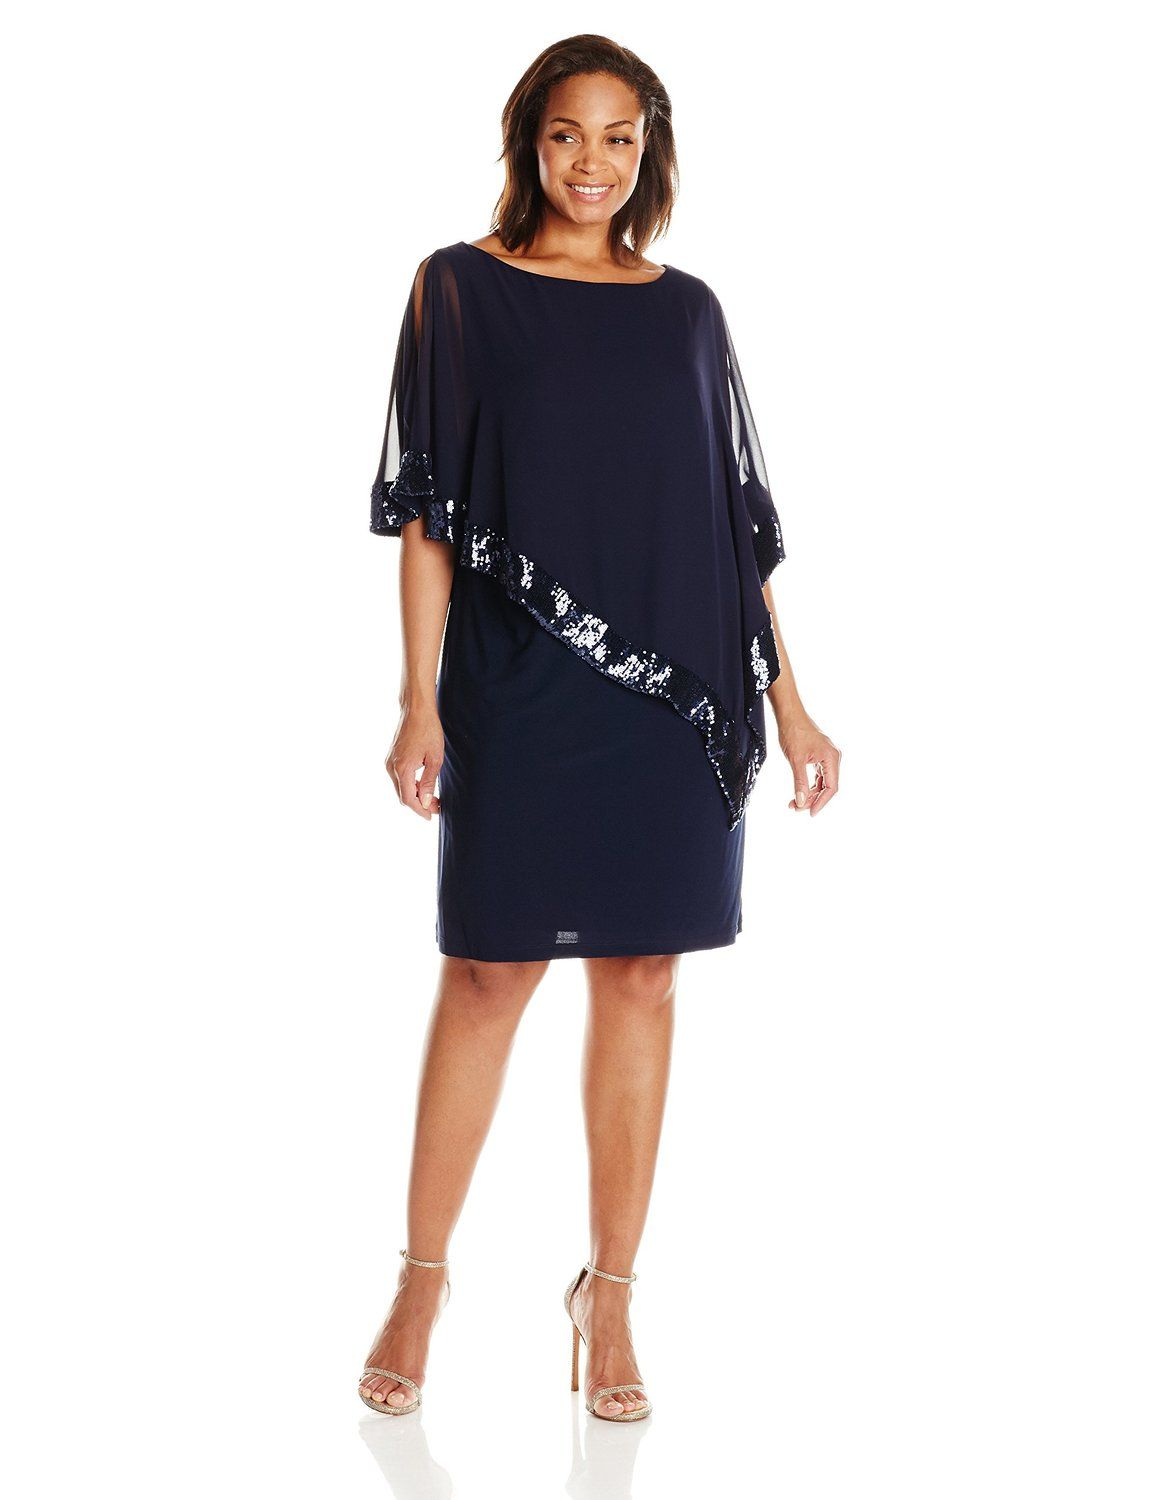 4bcd4c5f63a Amazon.com  Xscape Women s Plus-Size Short ITY Dress with Sequin Trim Chiffon  Overlay  Clothing